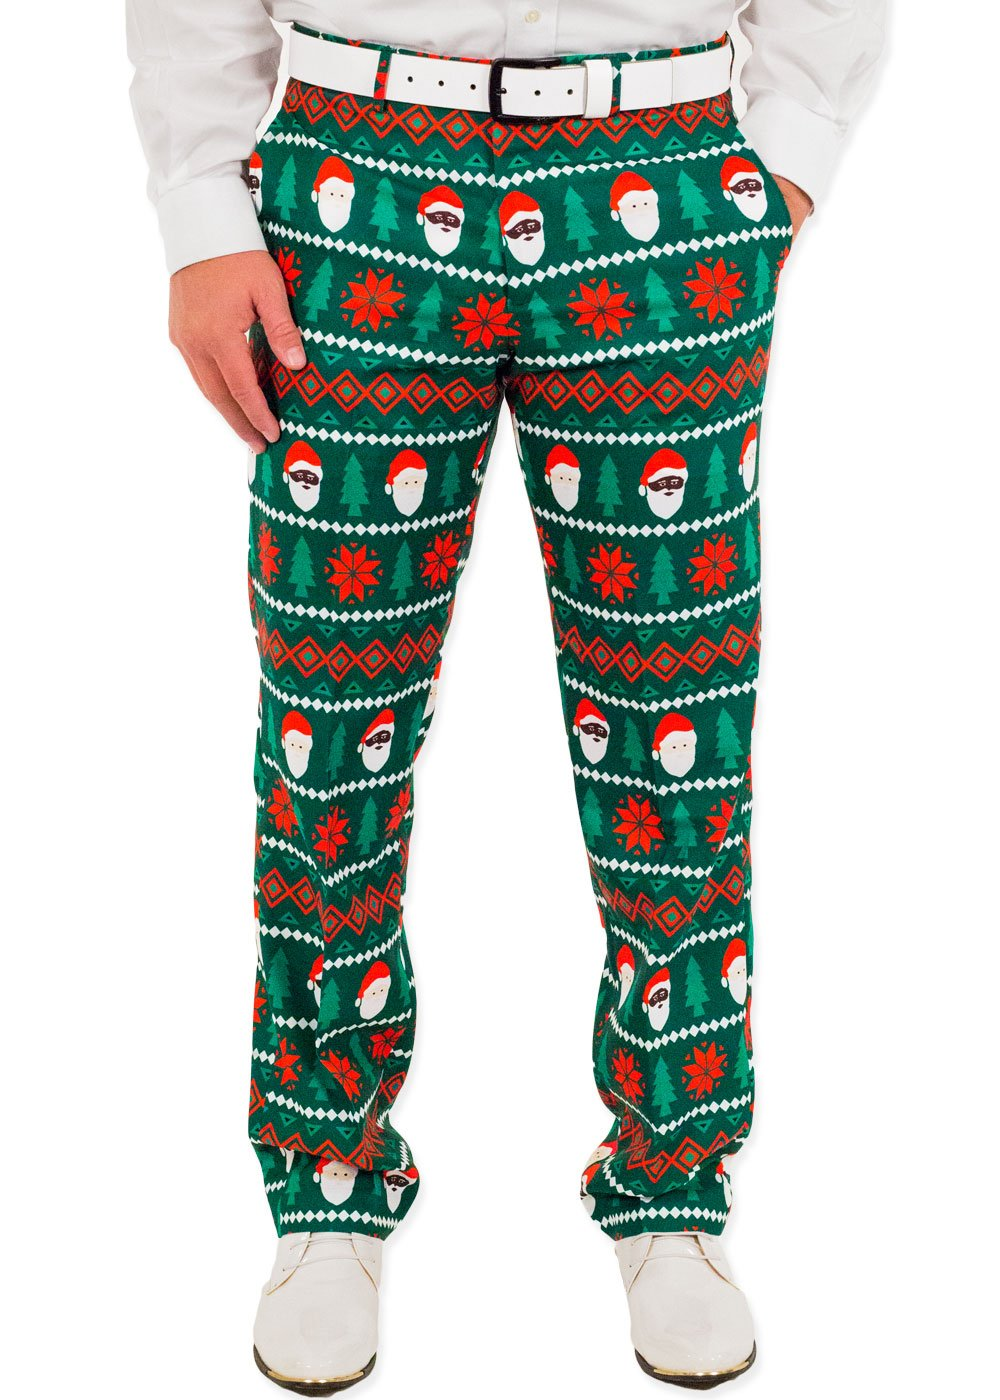 Festified Men's Holiday Santa Equality Christmas Suit Pants in Green (34) by Festified